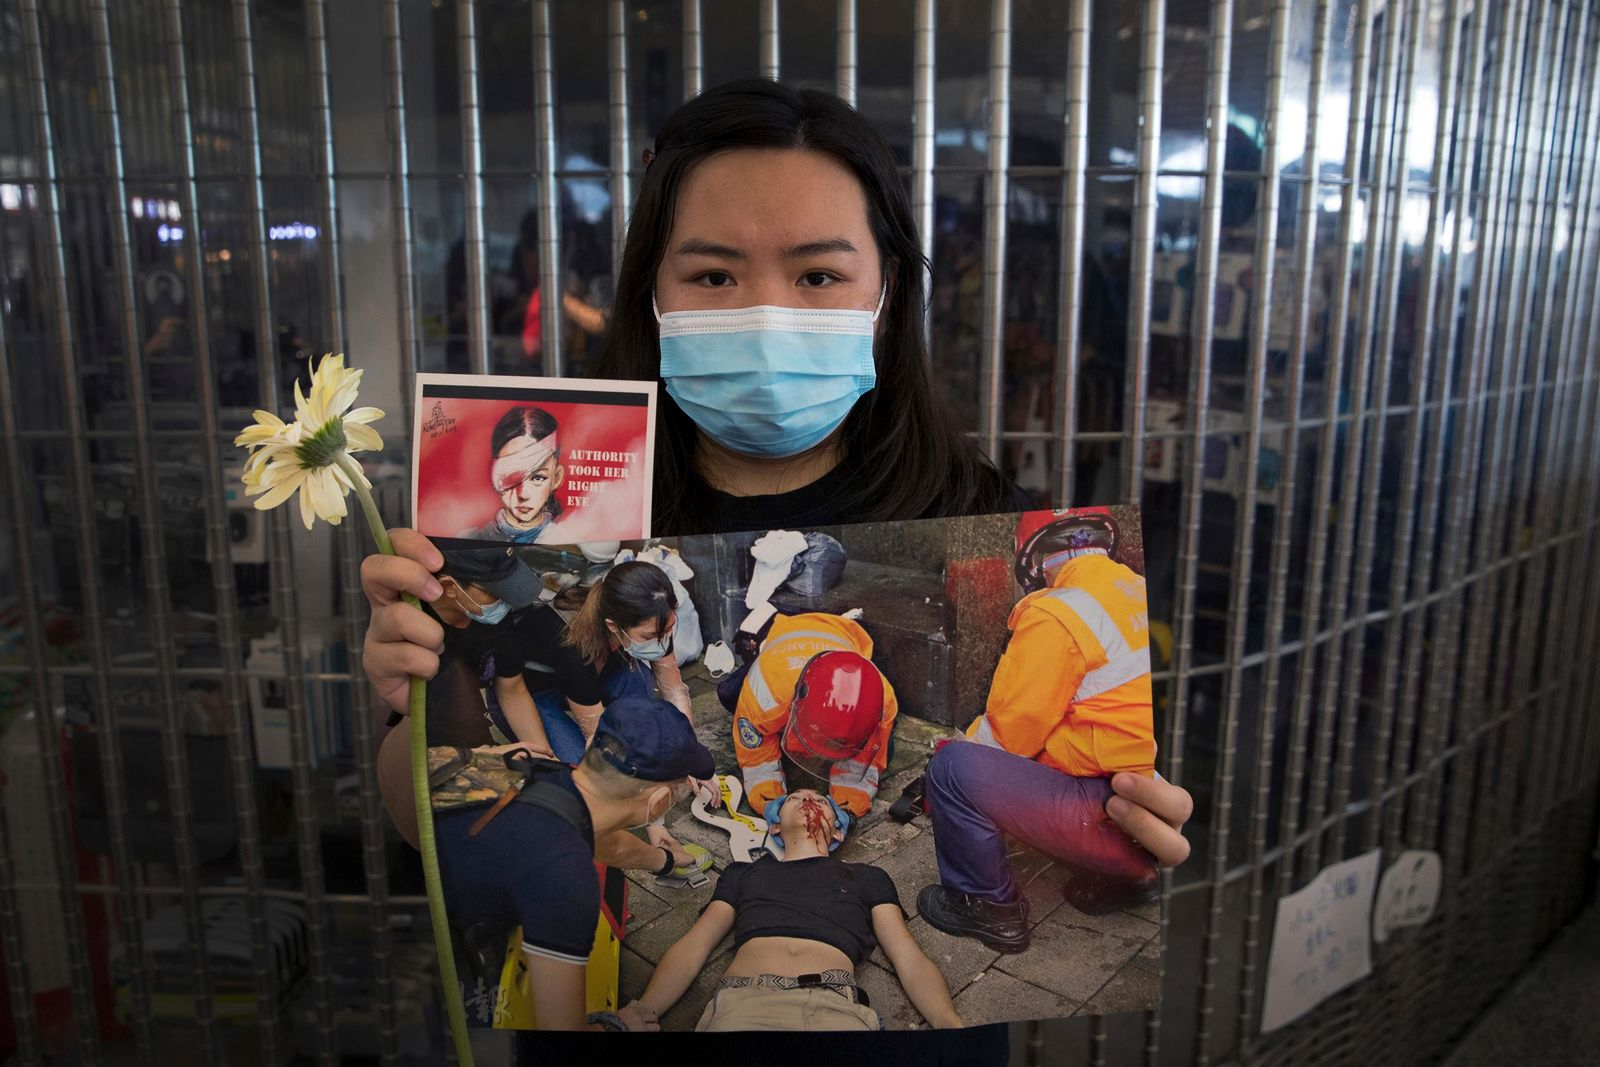 A woman holds a flower and posters showing people injured by police as protesters stage a sit-in rally at he Hong Kong International Airport in Hong Kong, Tuesday, Aug. 13, 2019. Protesters clogged the departure area at Hong Kong